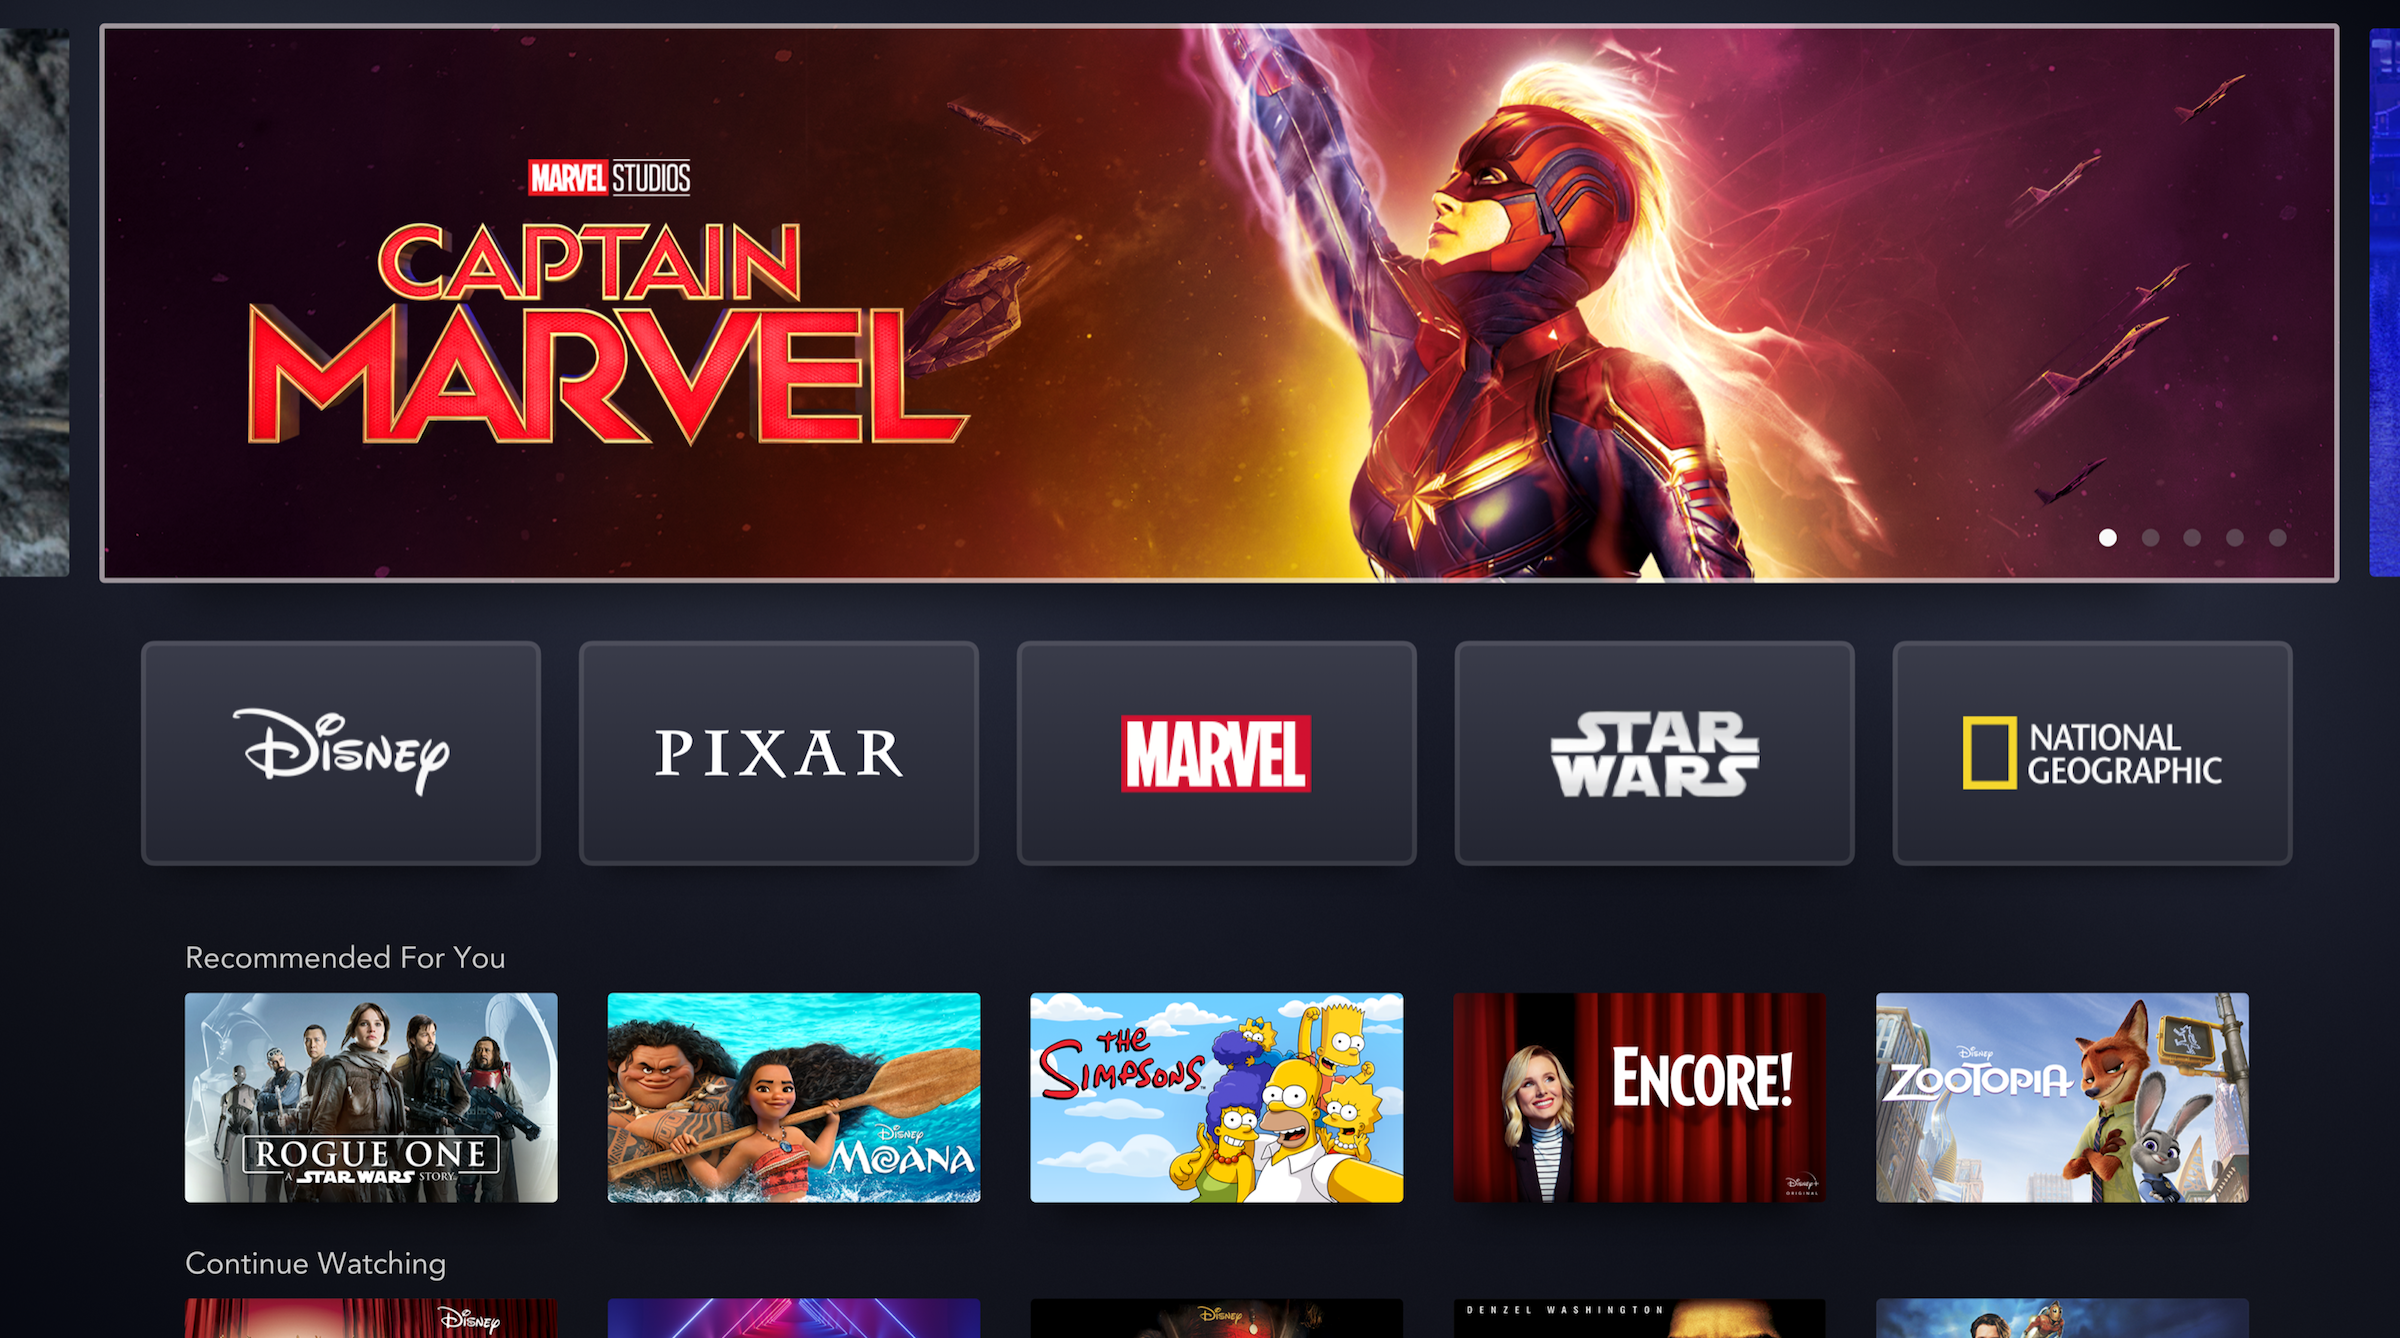 disney plus homepage featuring captain marvel, moana, simpsons, rogue one, and zootopia